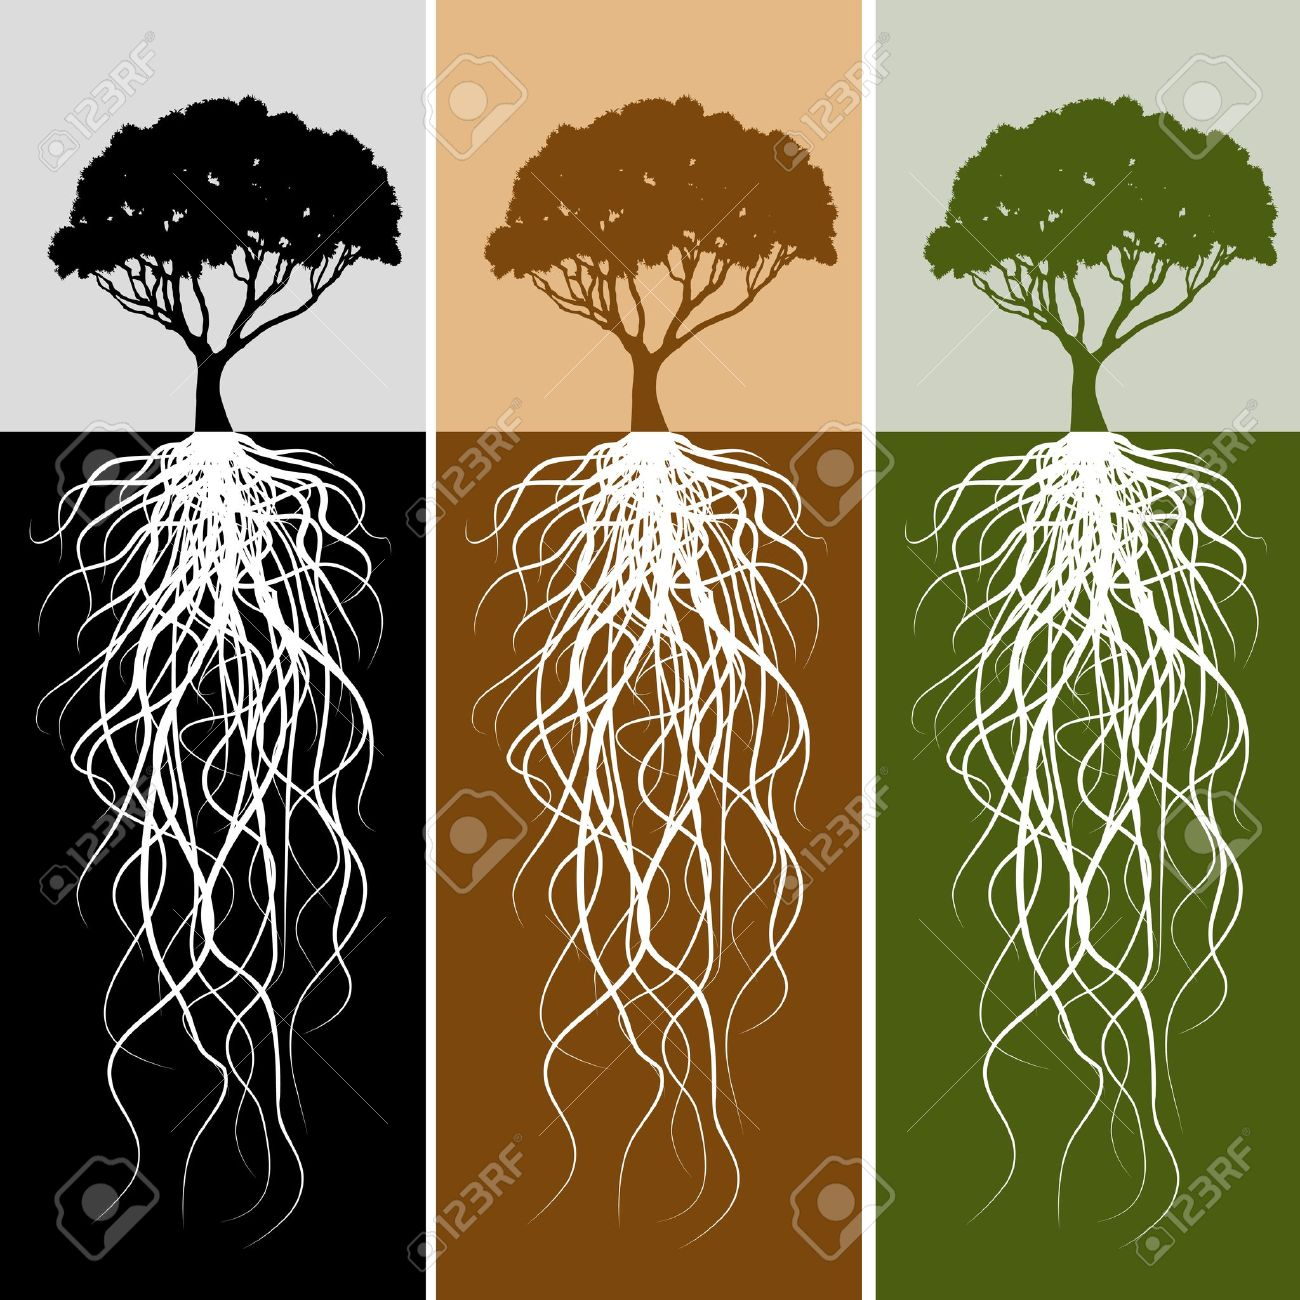 Tree Root Stock Photos, Pictures, Royalty Free Tree Root Images.